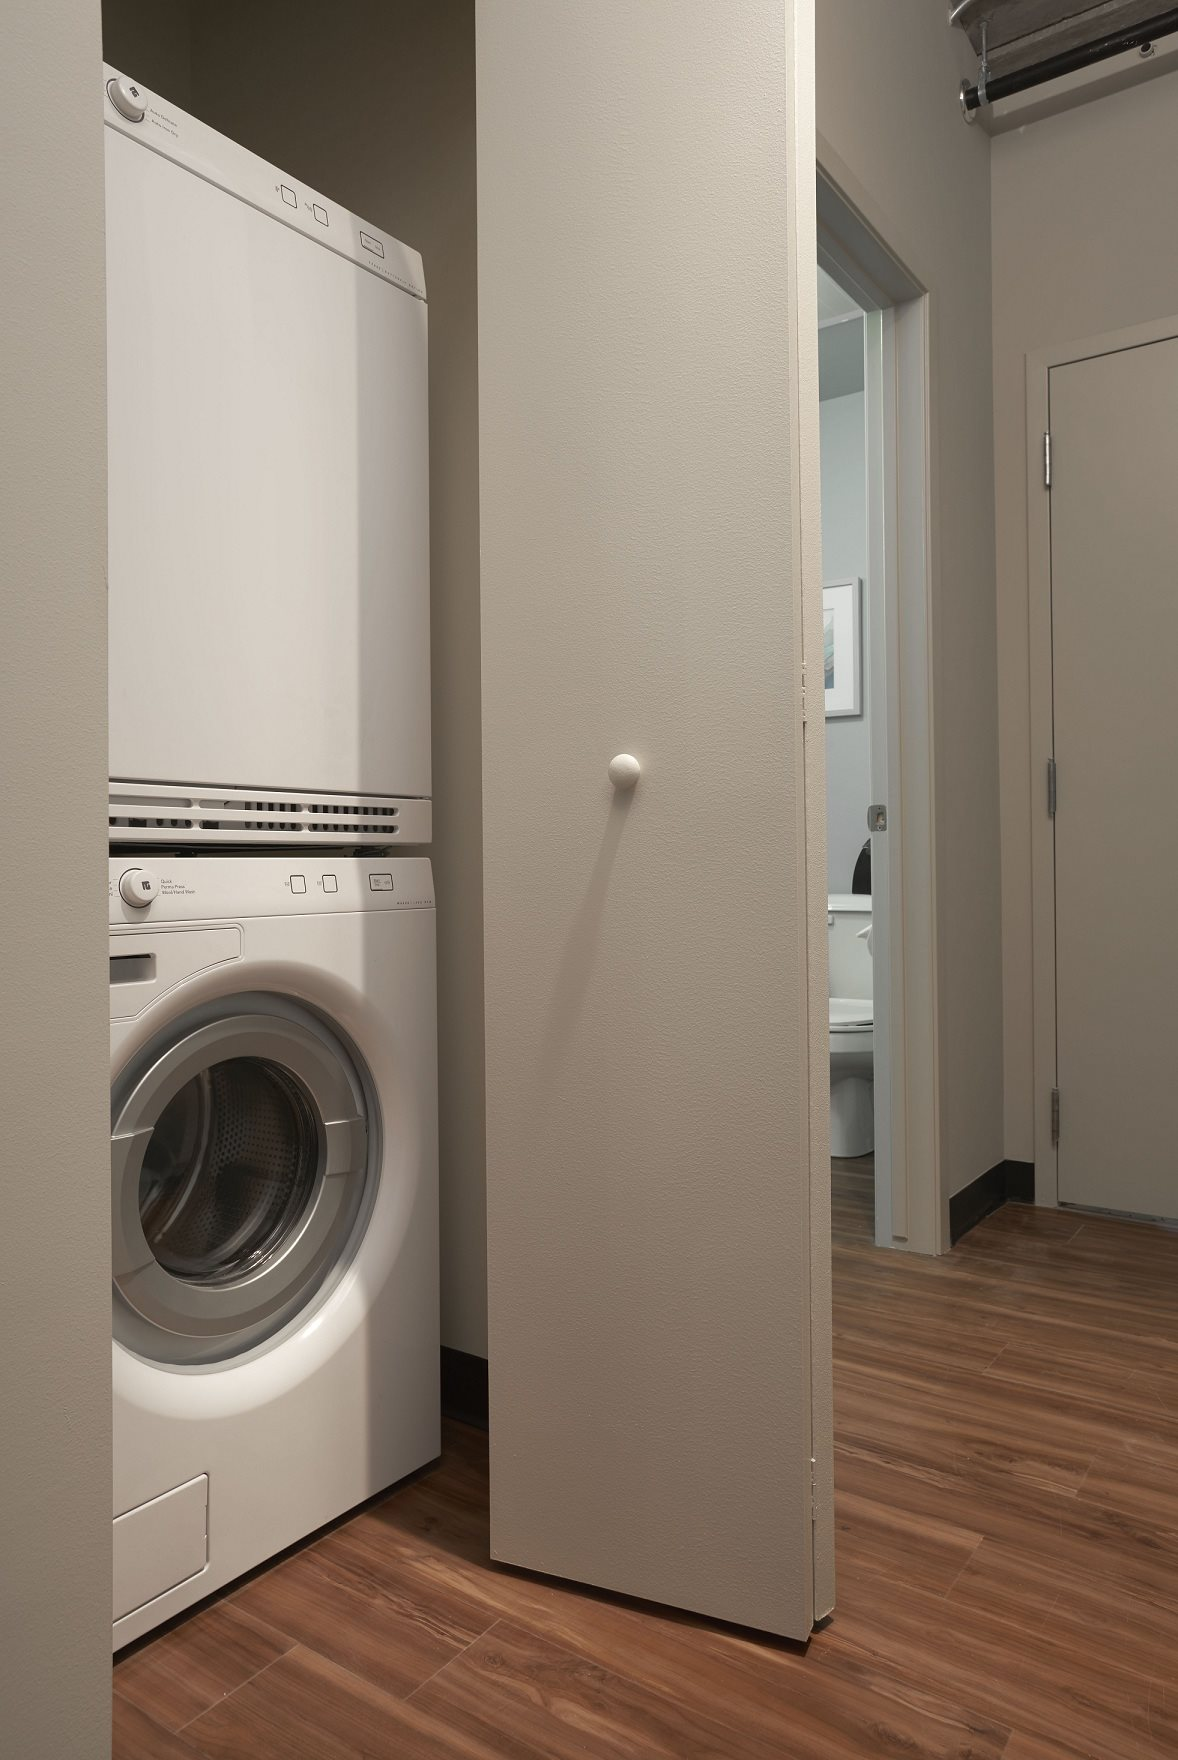 Enclosed washer and dryer in every home at 618 South Main 48104.